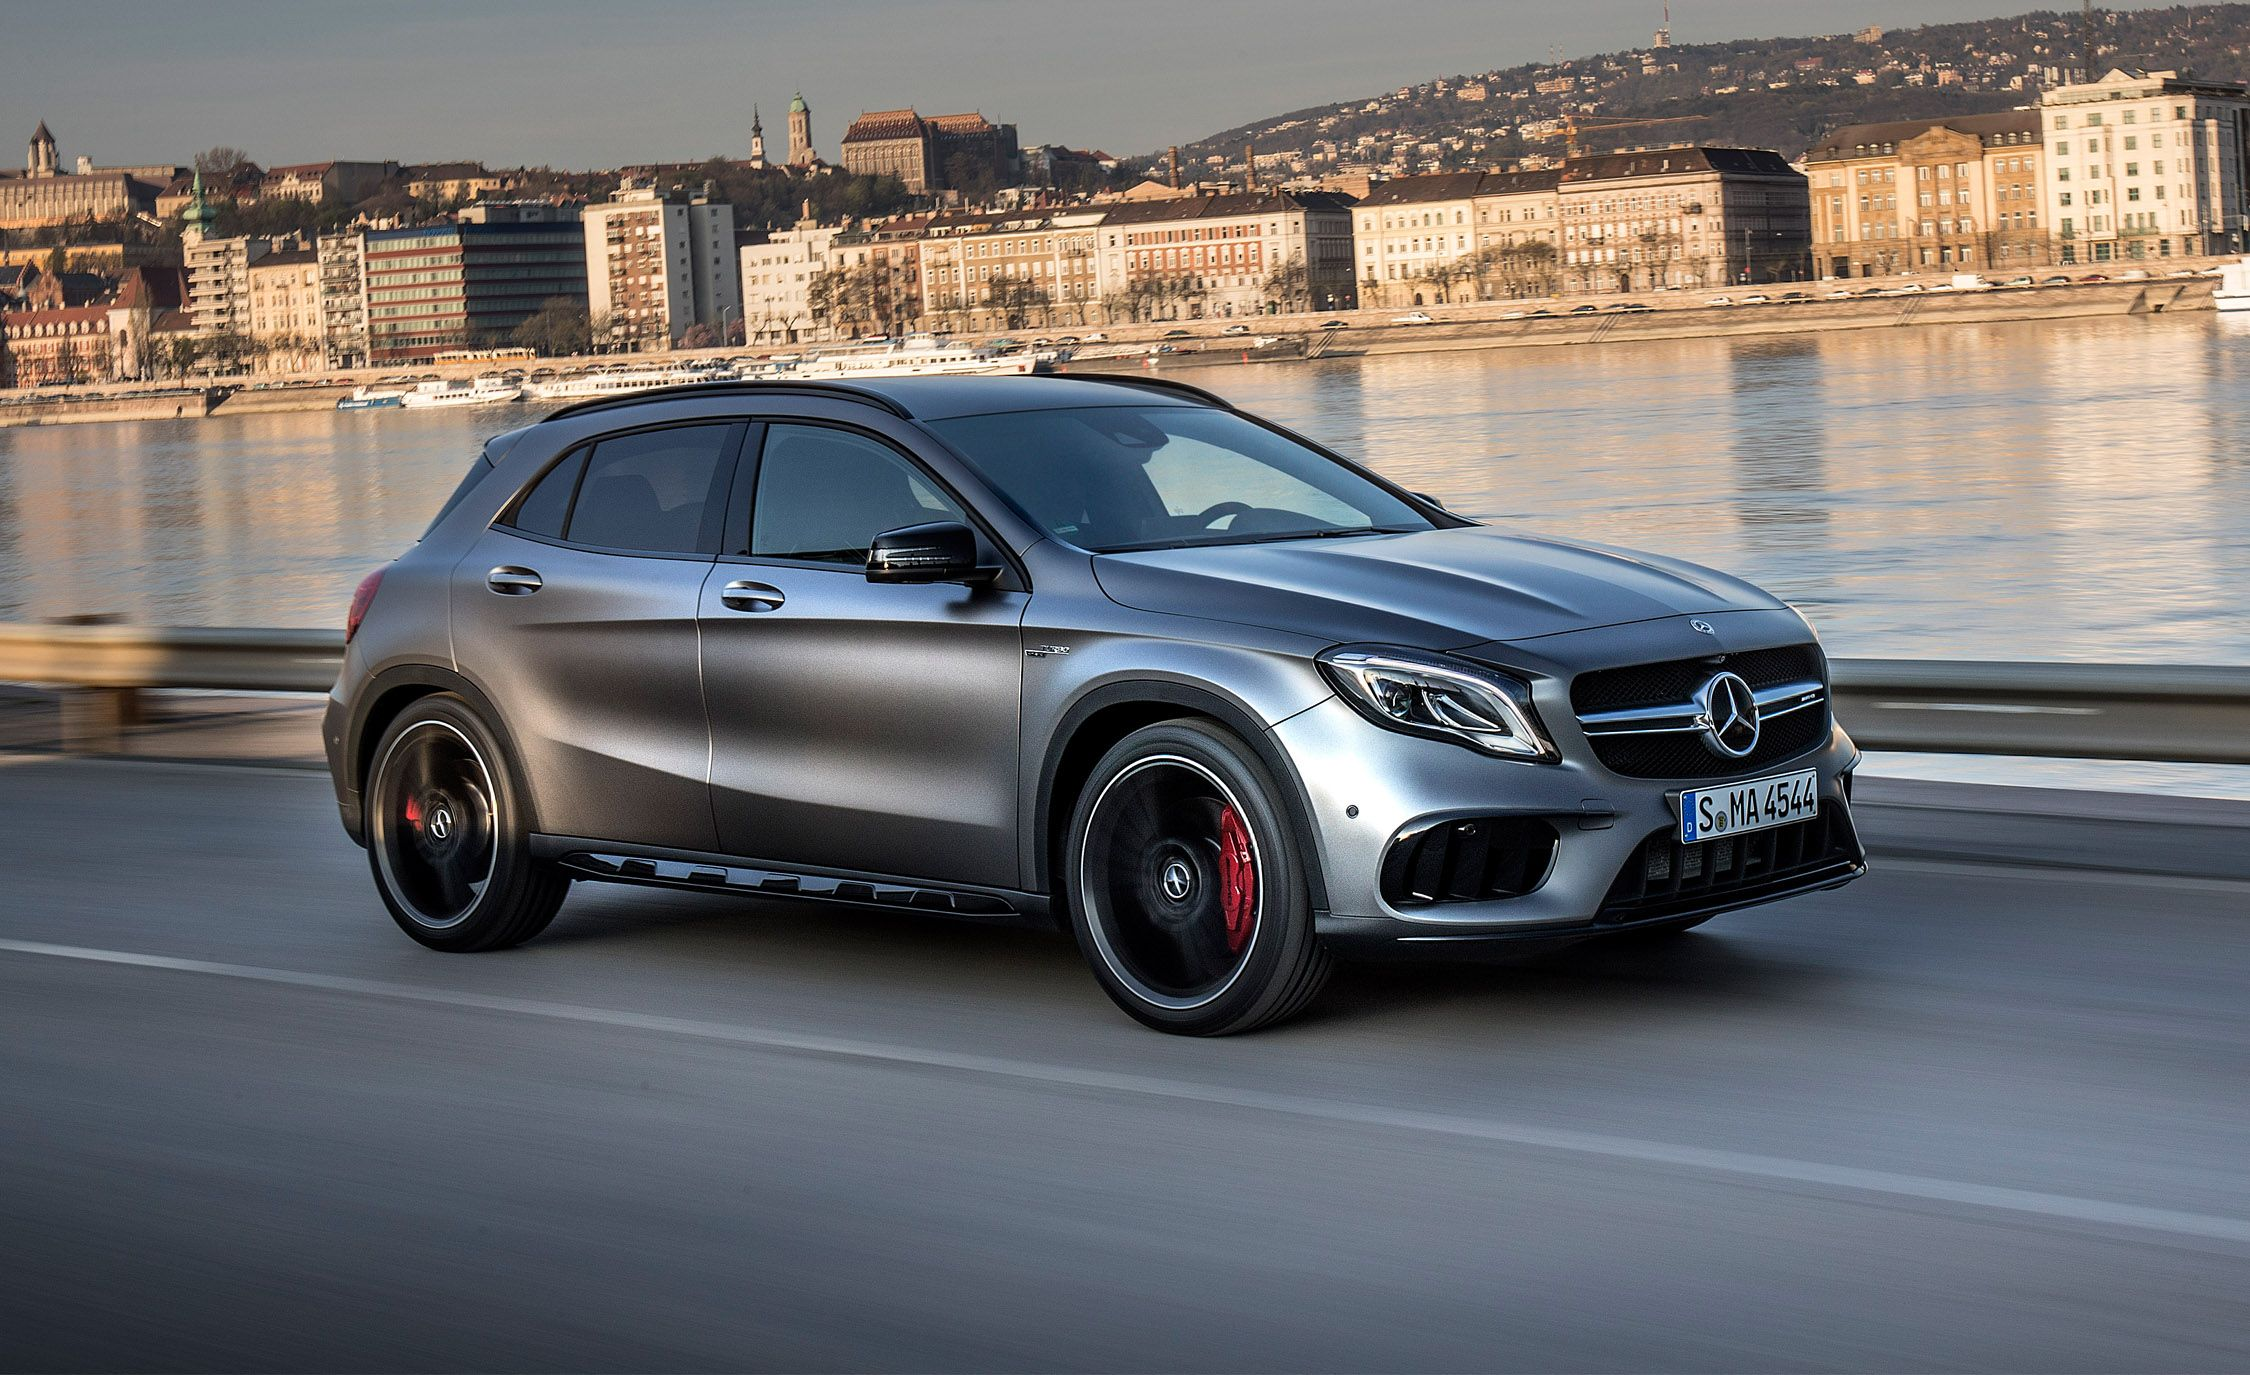 Benz 4matic Car >> 2017 Mercedes-AMG CLA45 and 2018 GLA45 First Drive | Review | Car and Driver